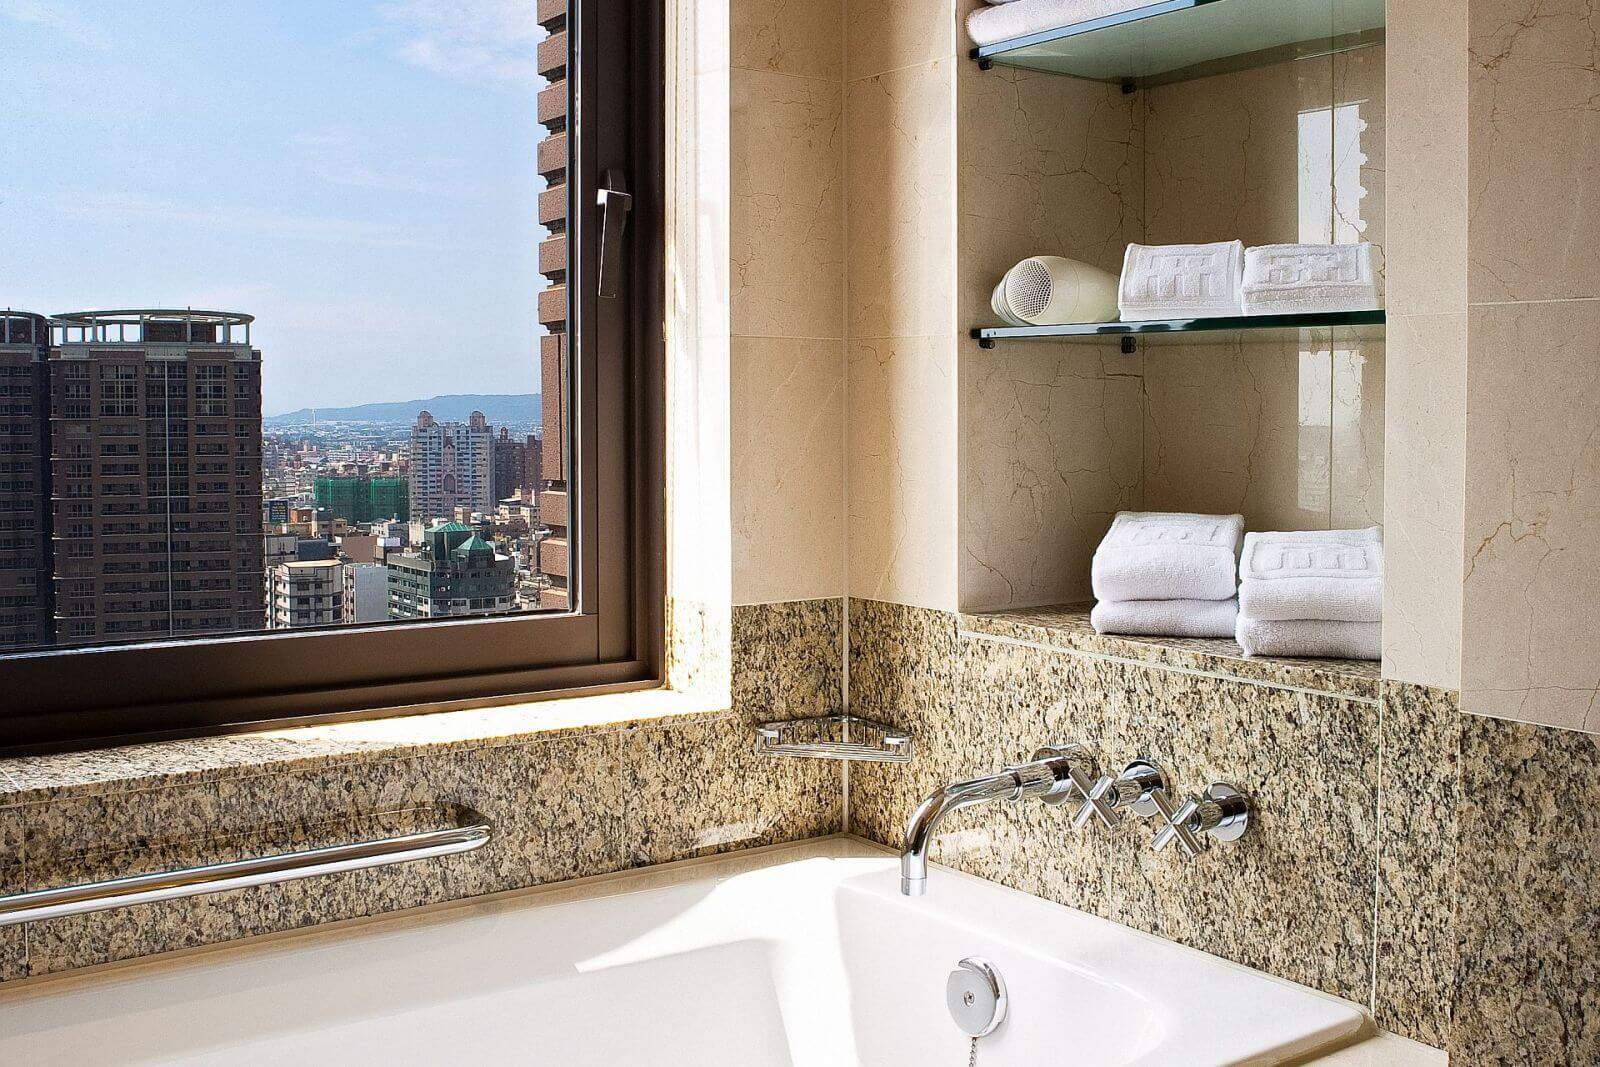 Ambassador Hotel Hsinchu Corner King Room features bathroom with a view